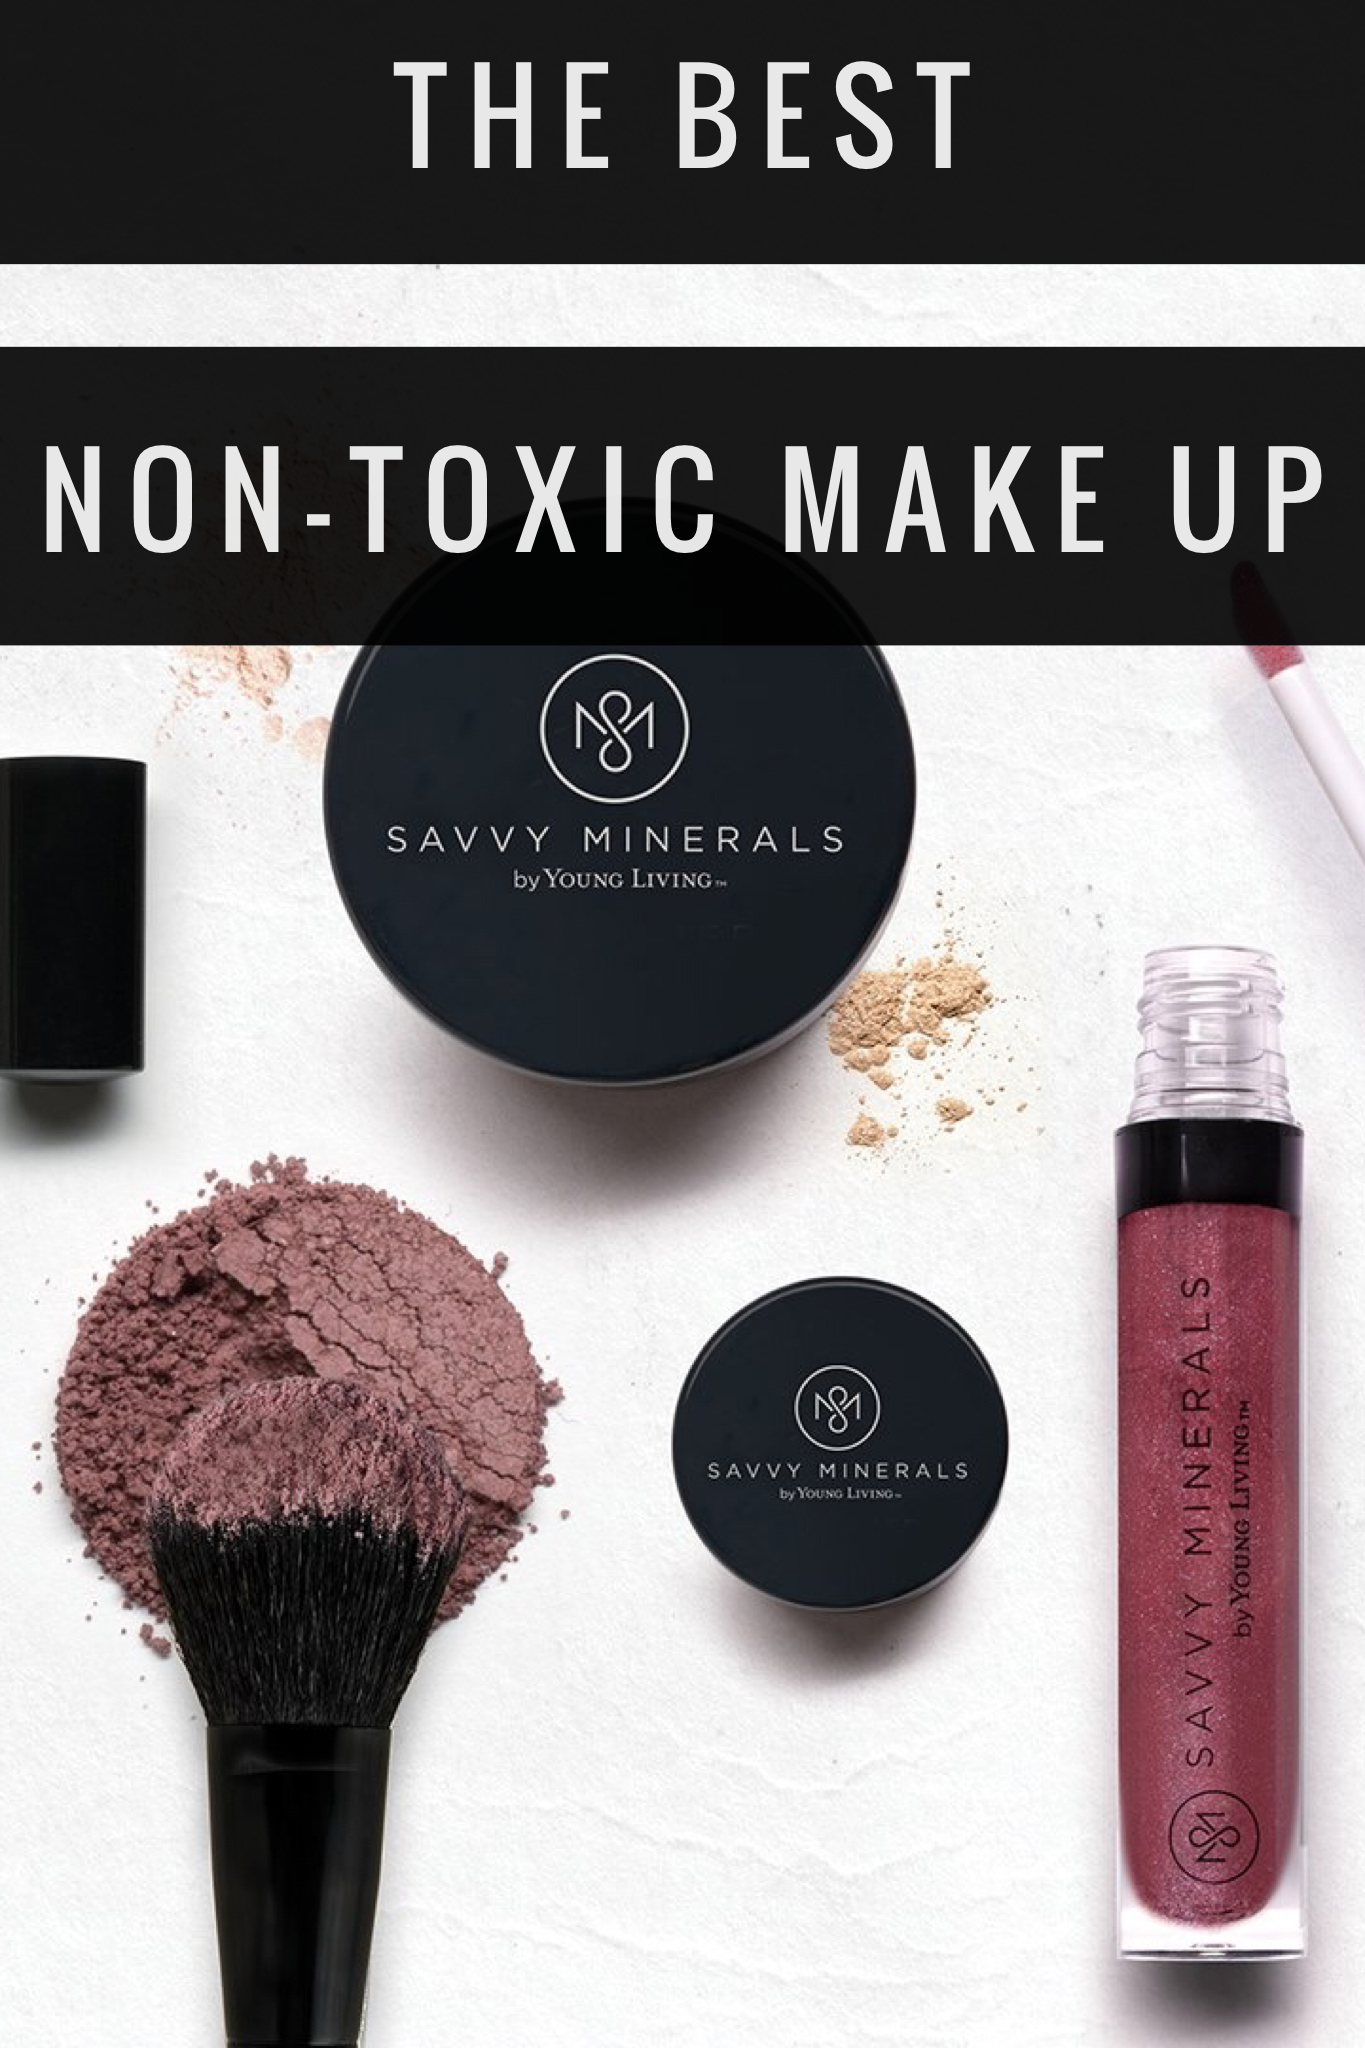 Savvy Minerals Make Up! Savvy minerals, Makeup for